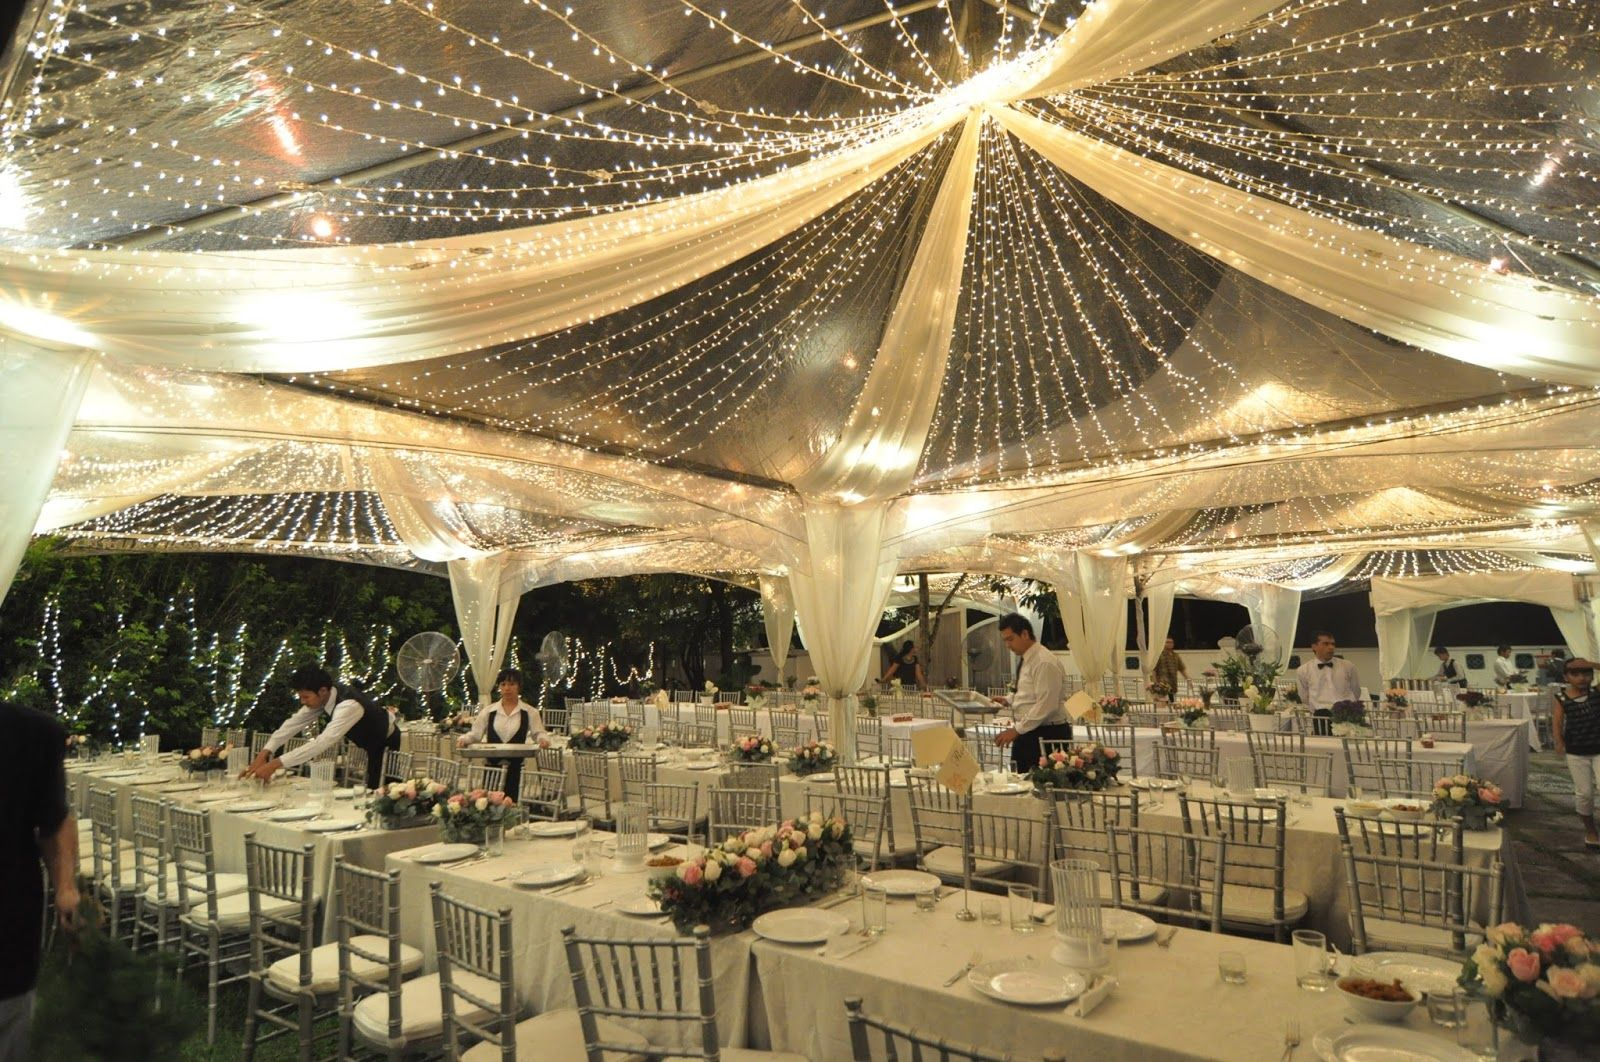 lovely lighting and decor in these clear tents tent